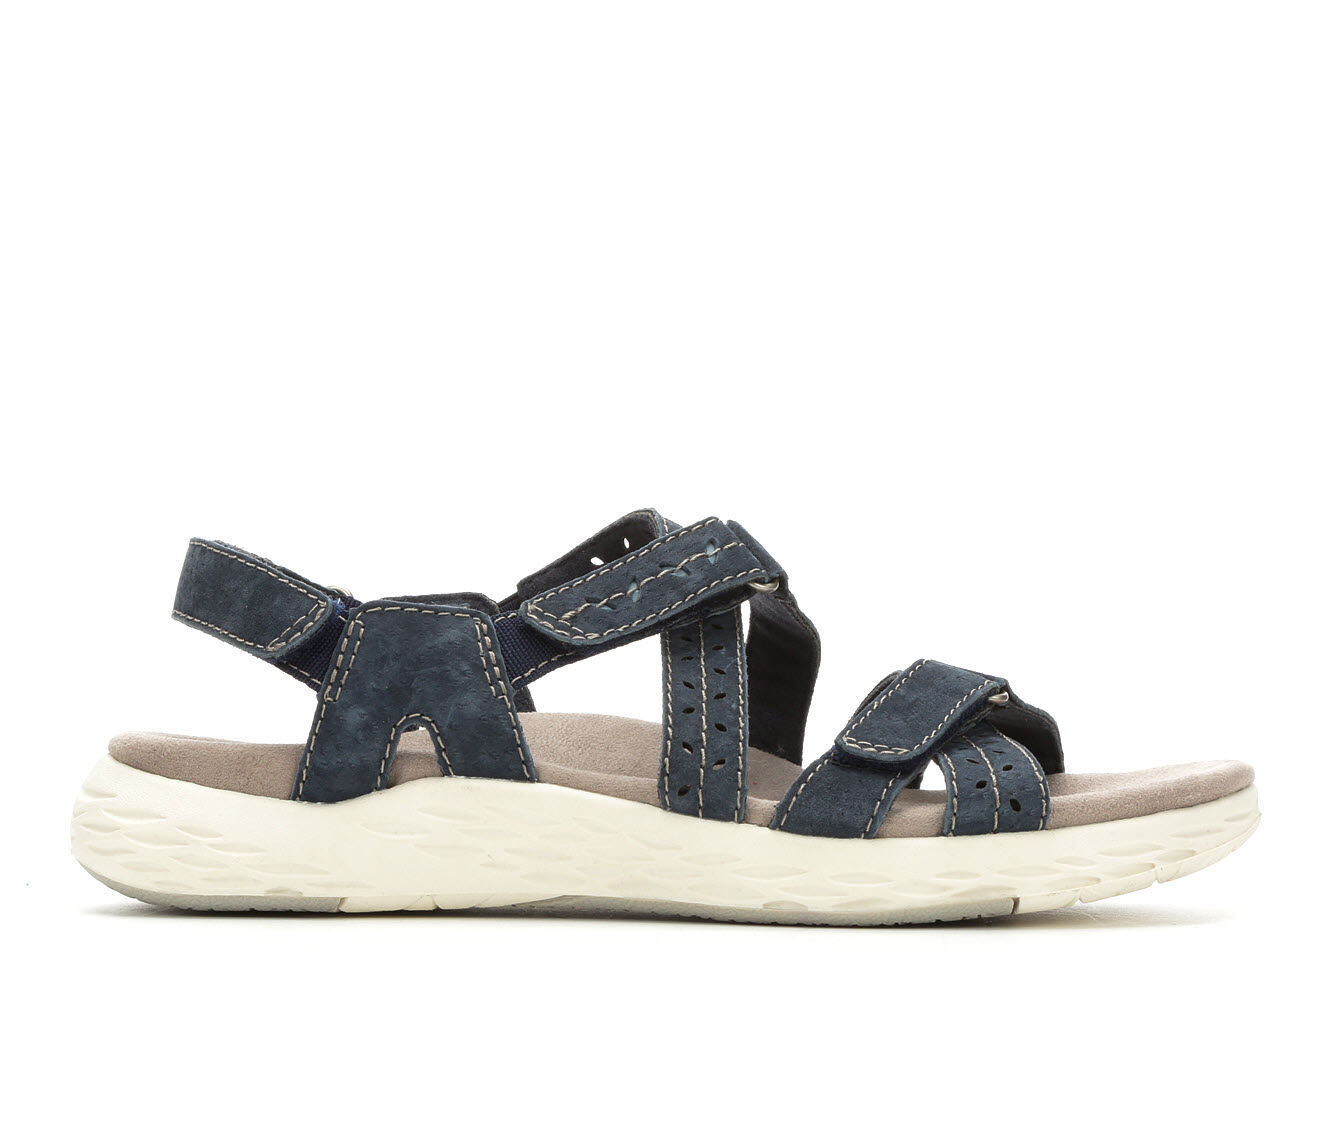 special price Women's Earth Origins Winona Hiking Sandals Navy Blue